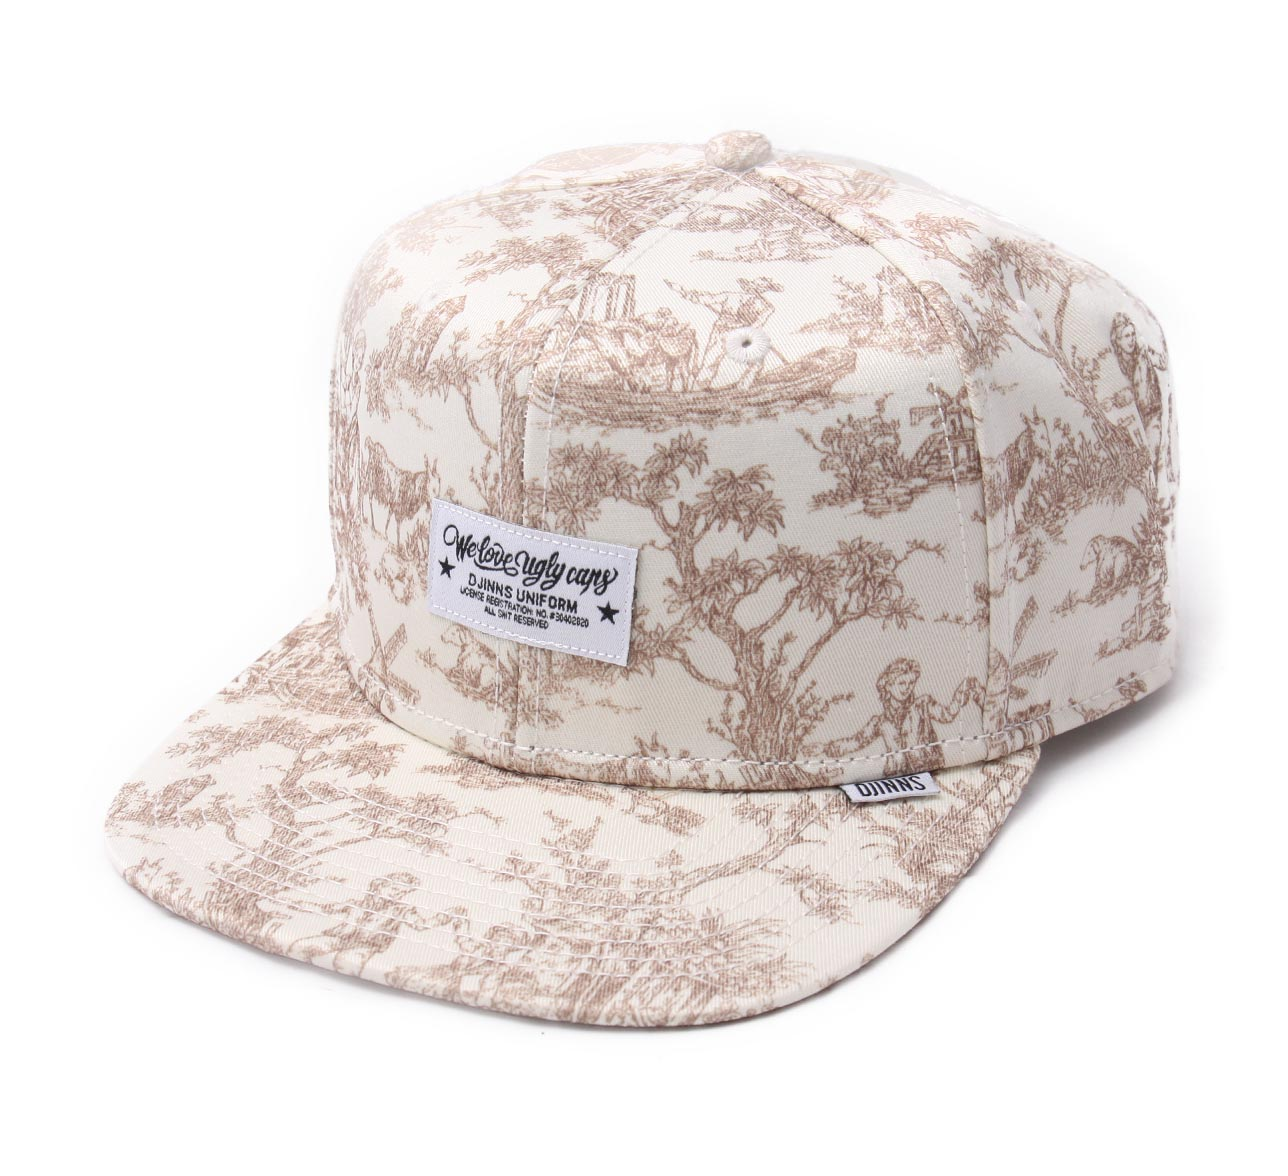 casquette-baseball-djinns-toile-de-jouy We love Ugly